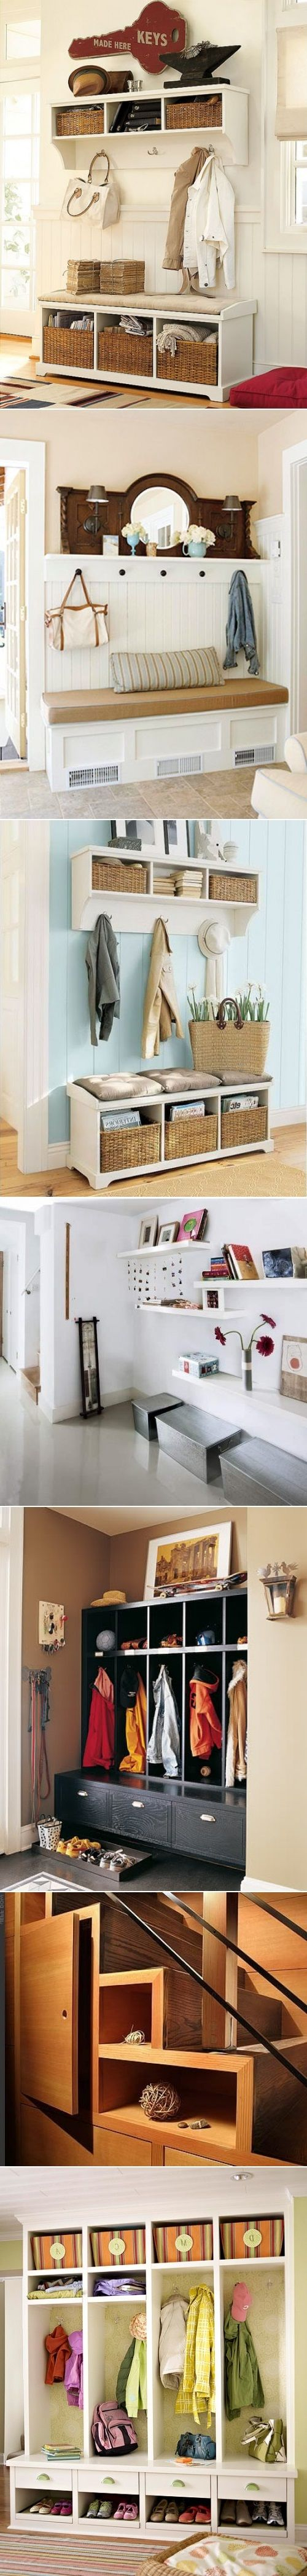 DIY Mudroom And Hallway Storage Ideas - when we get our own place I'm so doing this in the hall way. LOVE the middle one